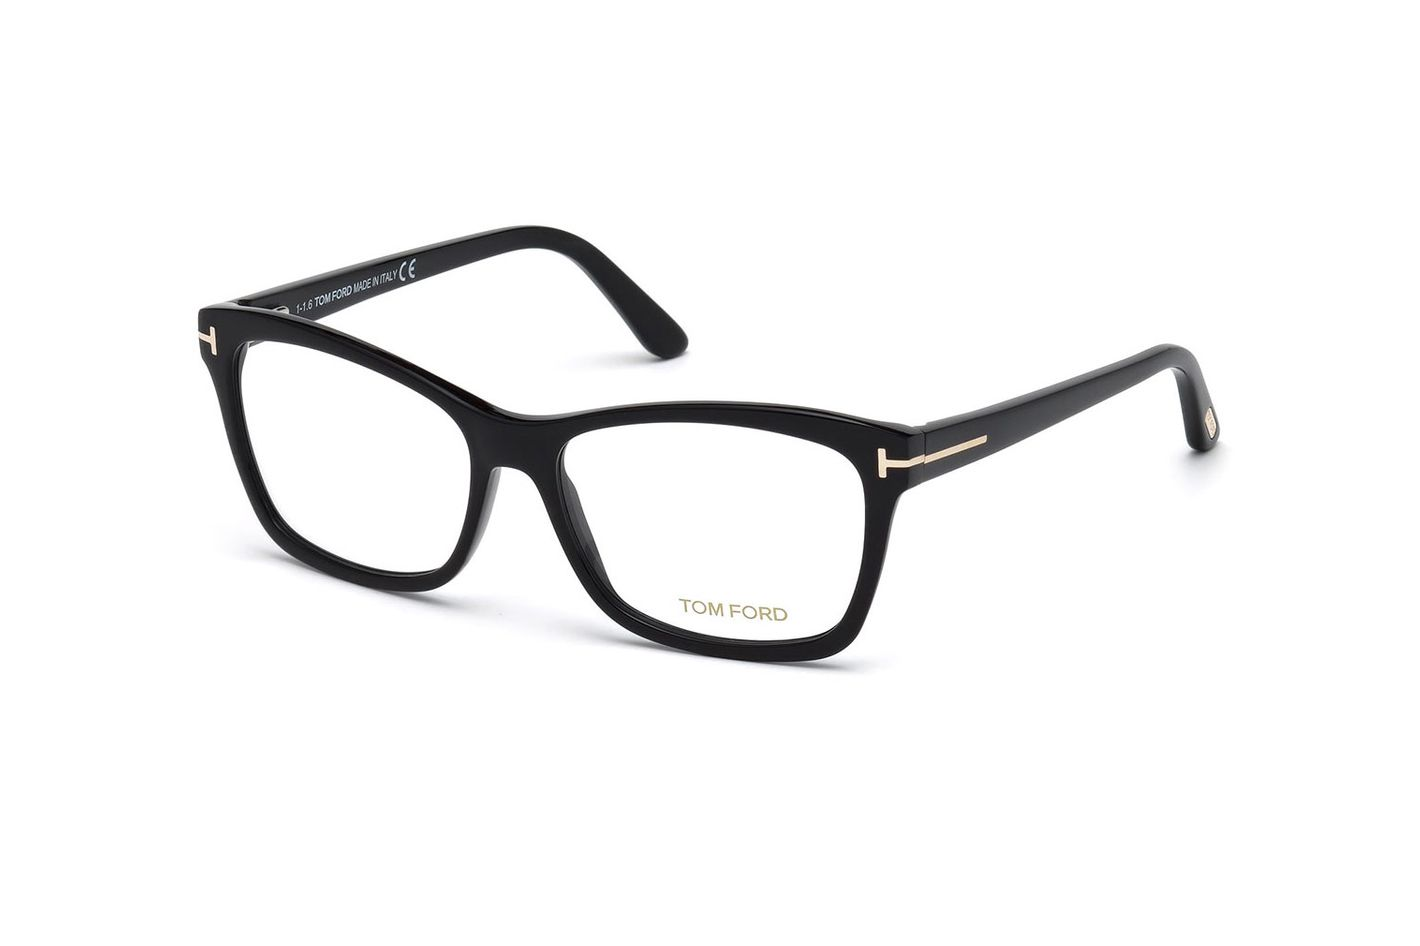 Tom Ford Square Optical Frames